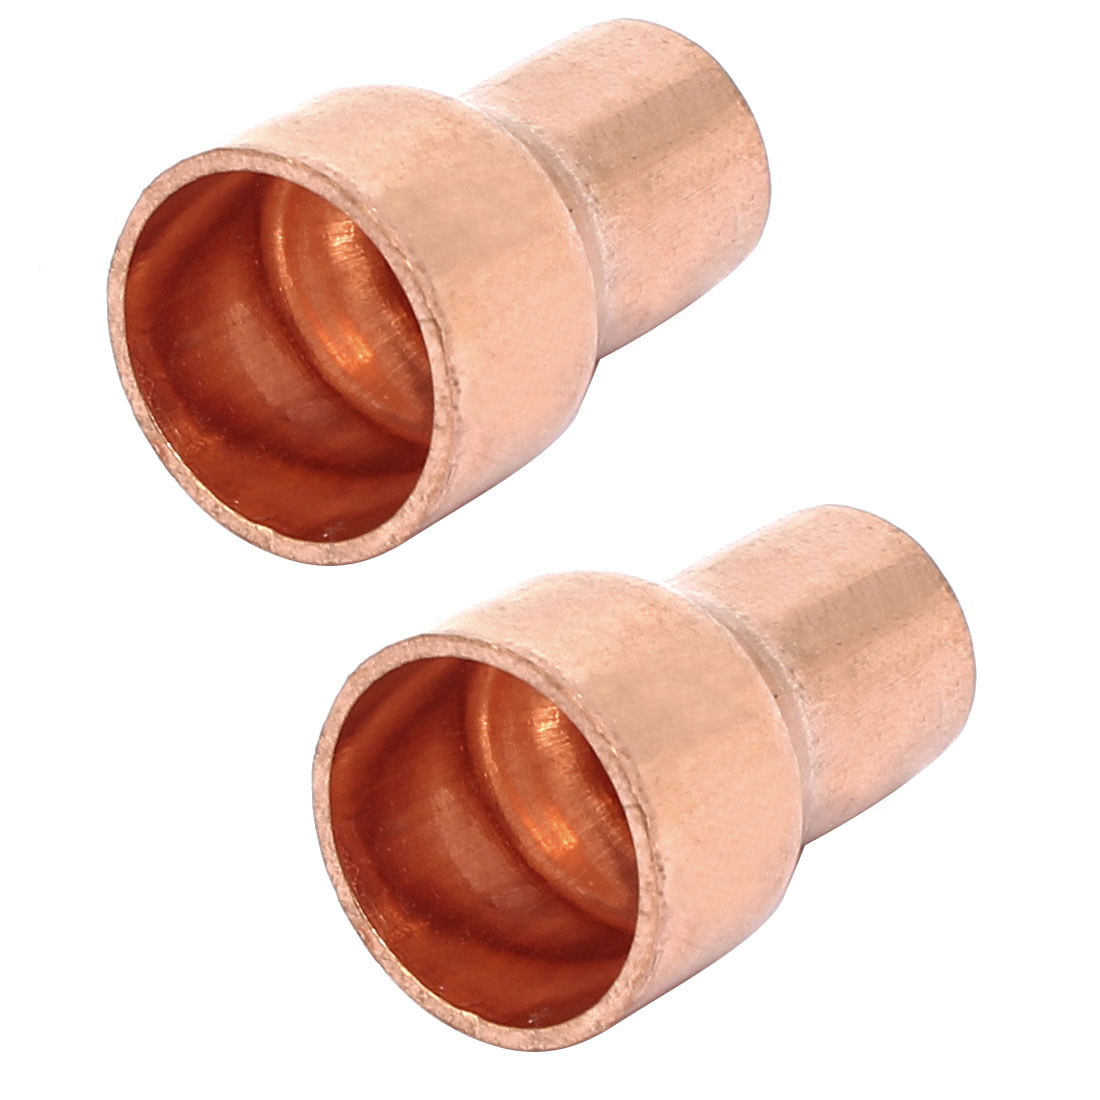 12.7mmx8mm Tube Air Conditioner Copper Reducer Straight Fittings 2pcs